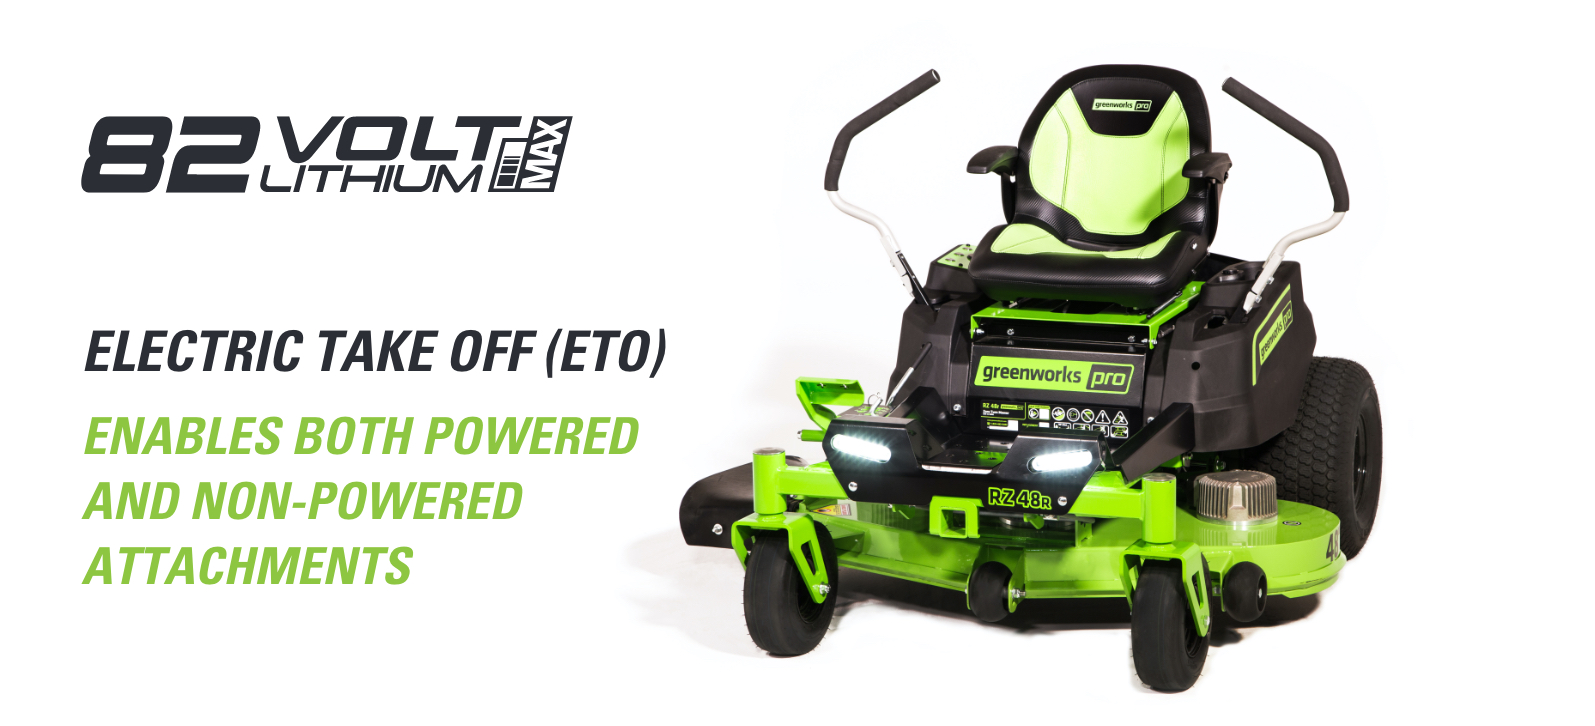 48V Residential Ride-On Zero Turn Mower | Greenworks Commercial